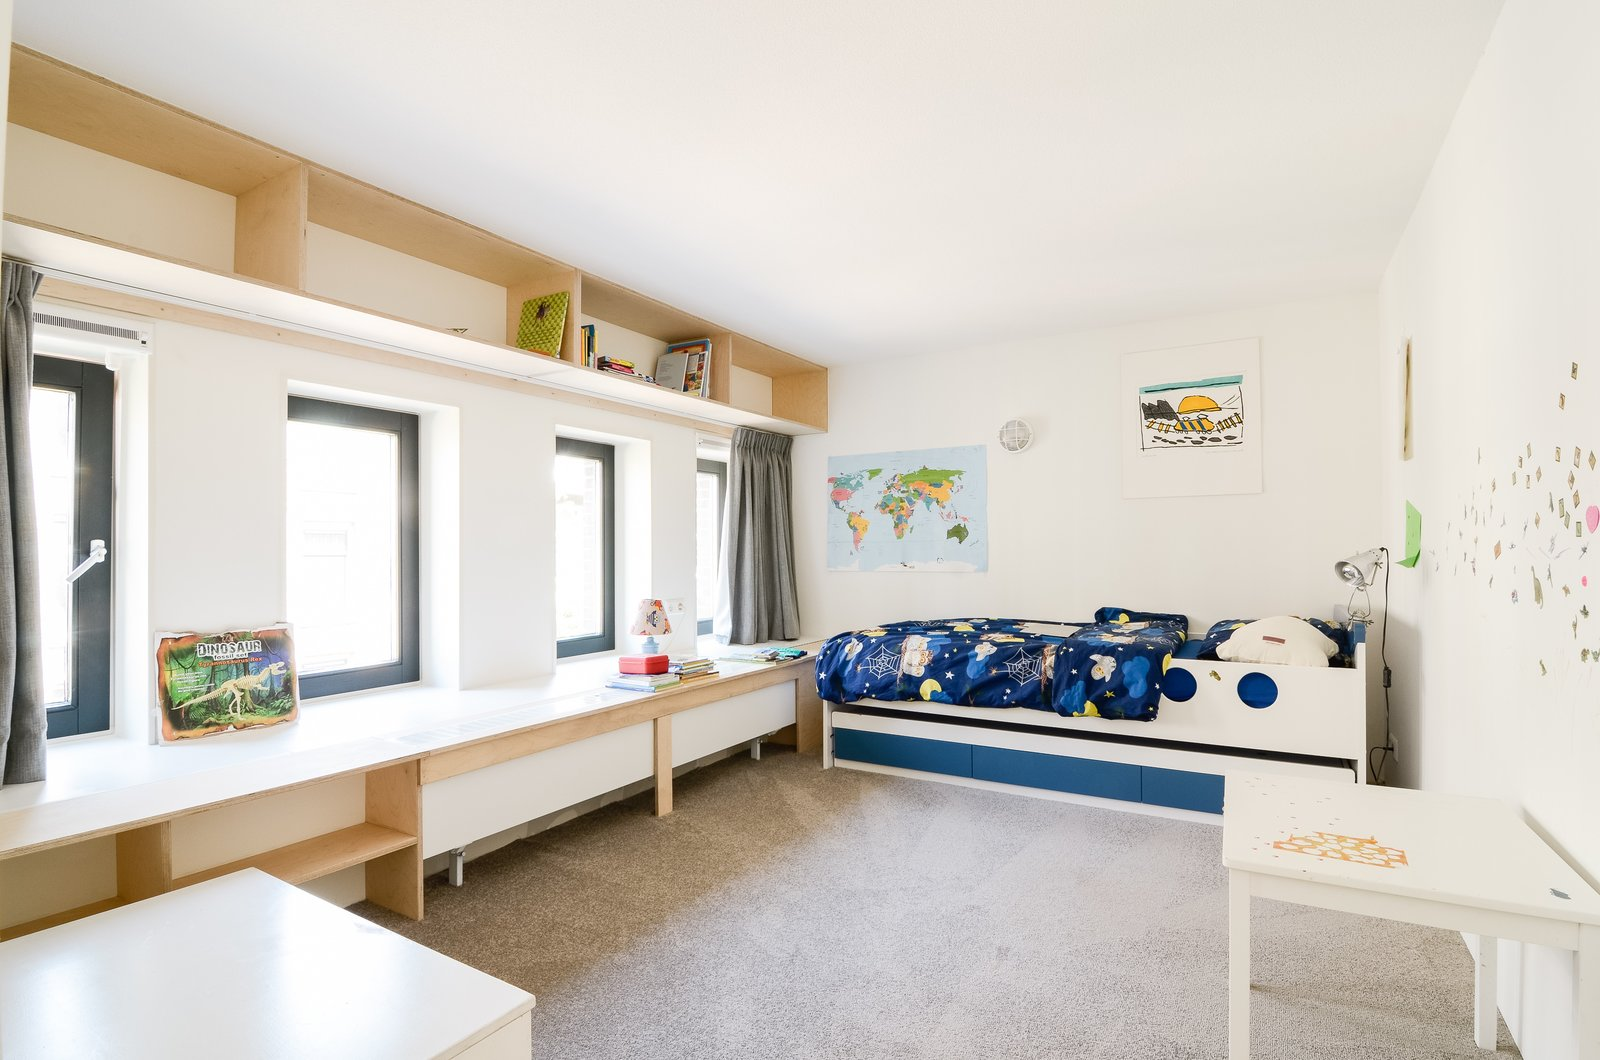 Another former teacher's lounge was converted into a kid's bedroom. For consistency, simple plywood, lightly coated with lacquer, was used for custom furniture and shelving.  The Schoolhouse by Sarah Akkoush